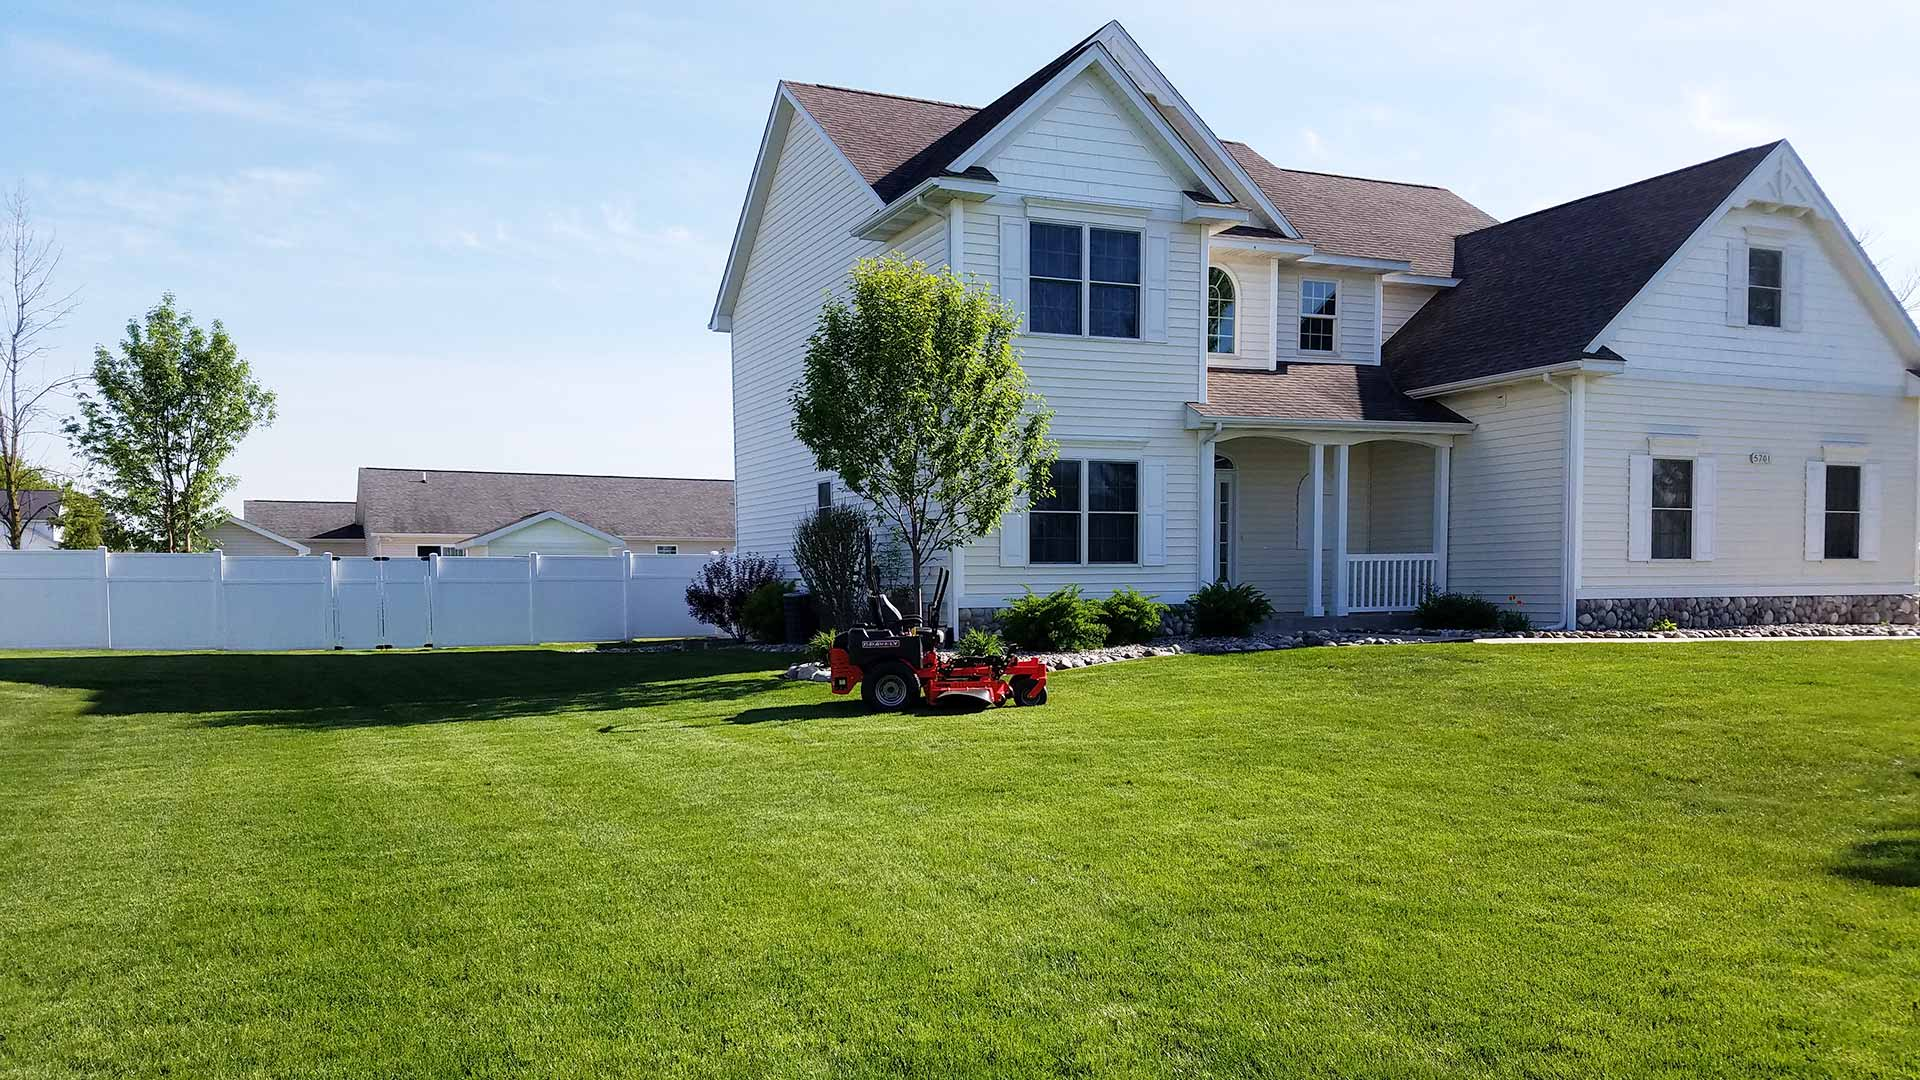 Large, freshly mowed front yard with a parked riding mower.